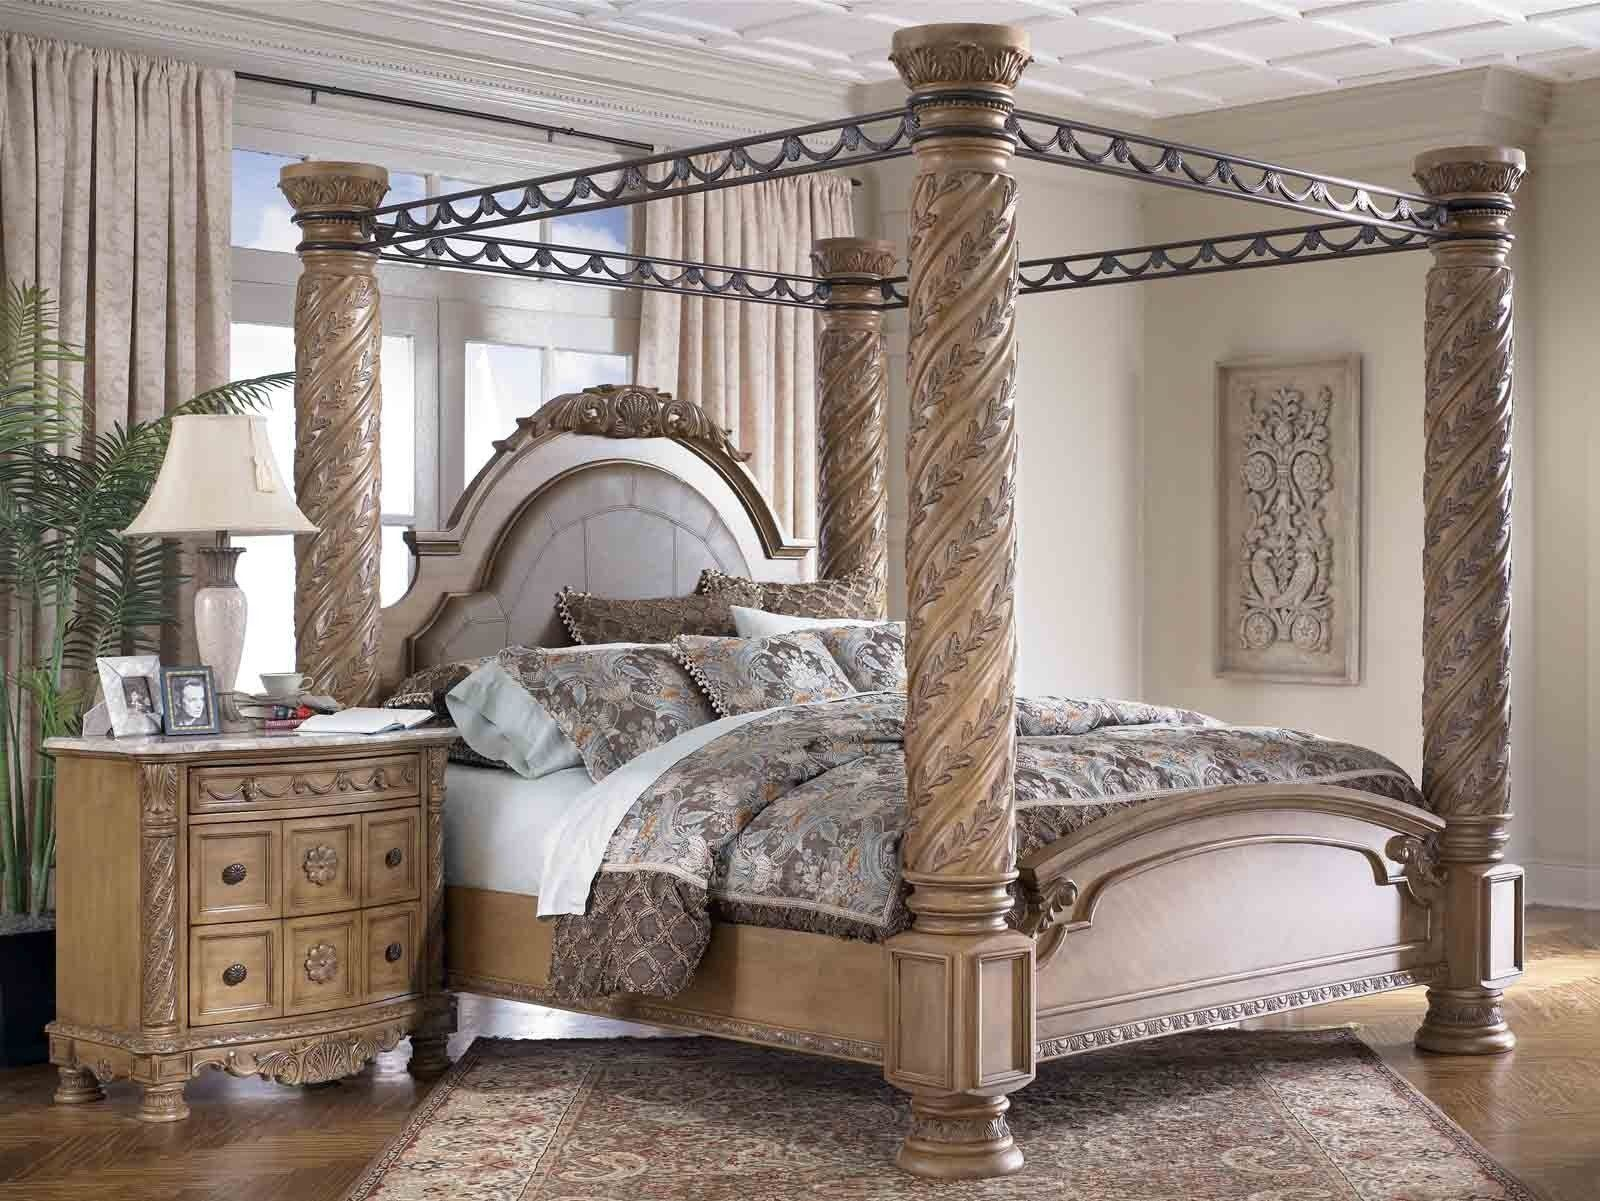 Bedding Romantic King Size Canopy Bed Frame Ideas Mooz The Most